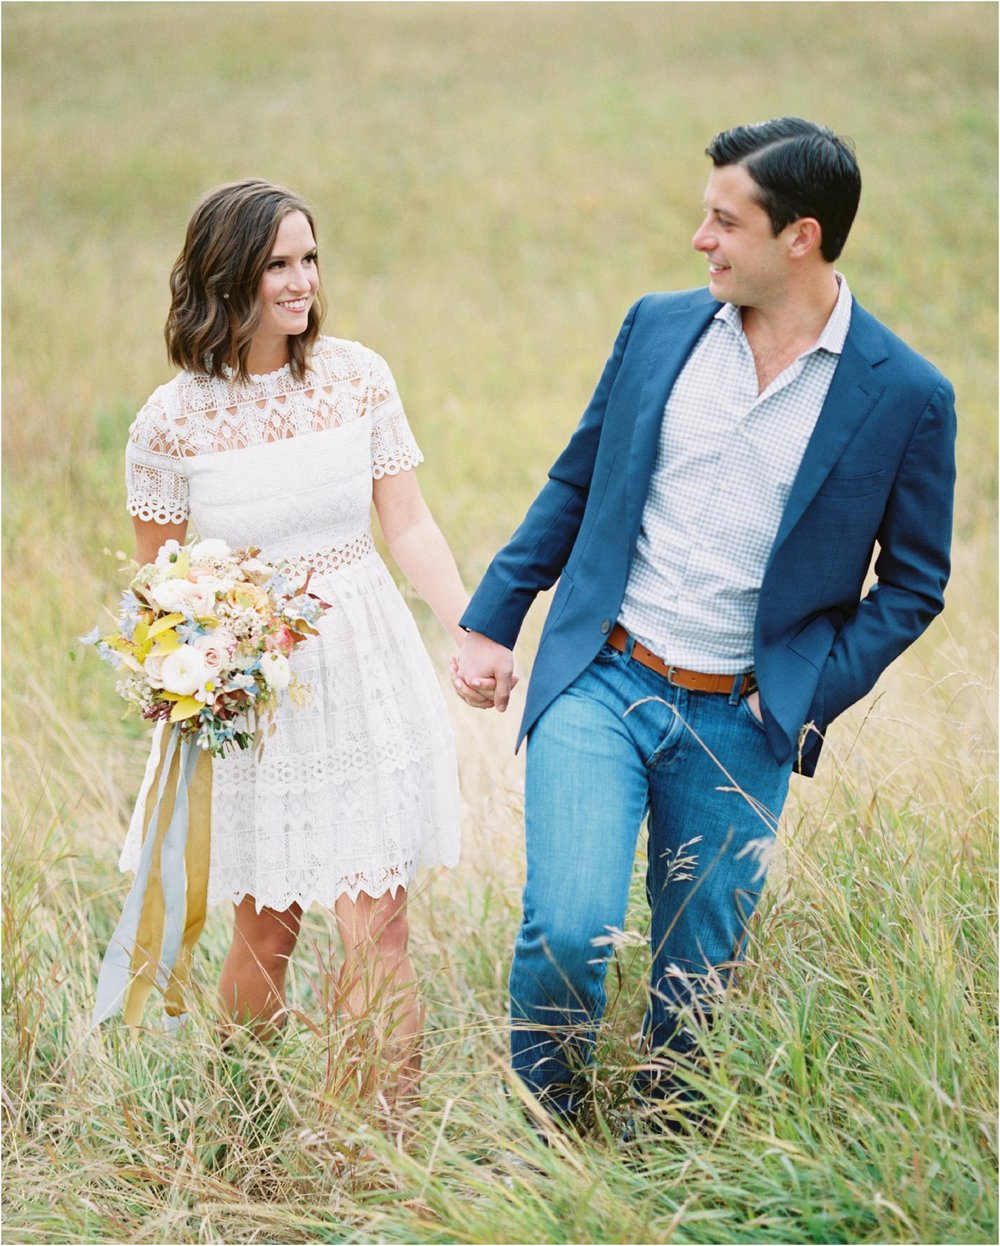 Engagement at Green Valley Ranch, Montana Wedding. Florals by Greenwood Events http://www.greenwood.events/